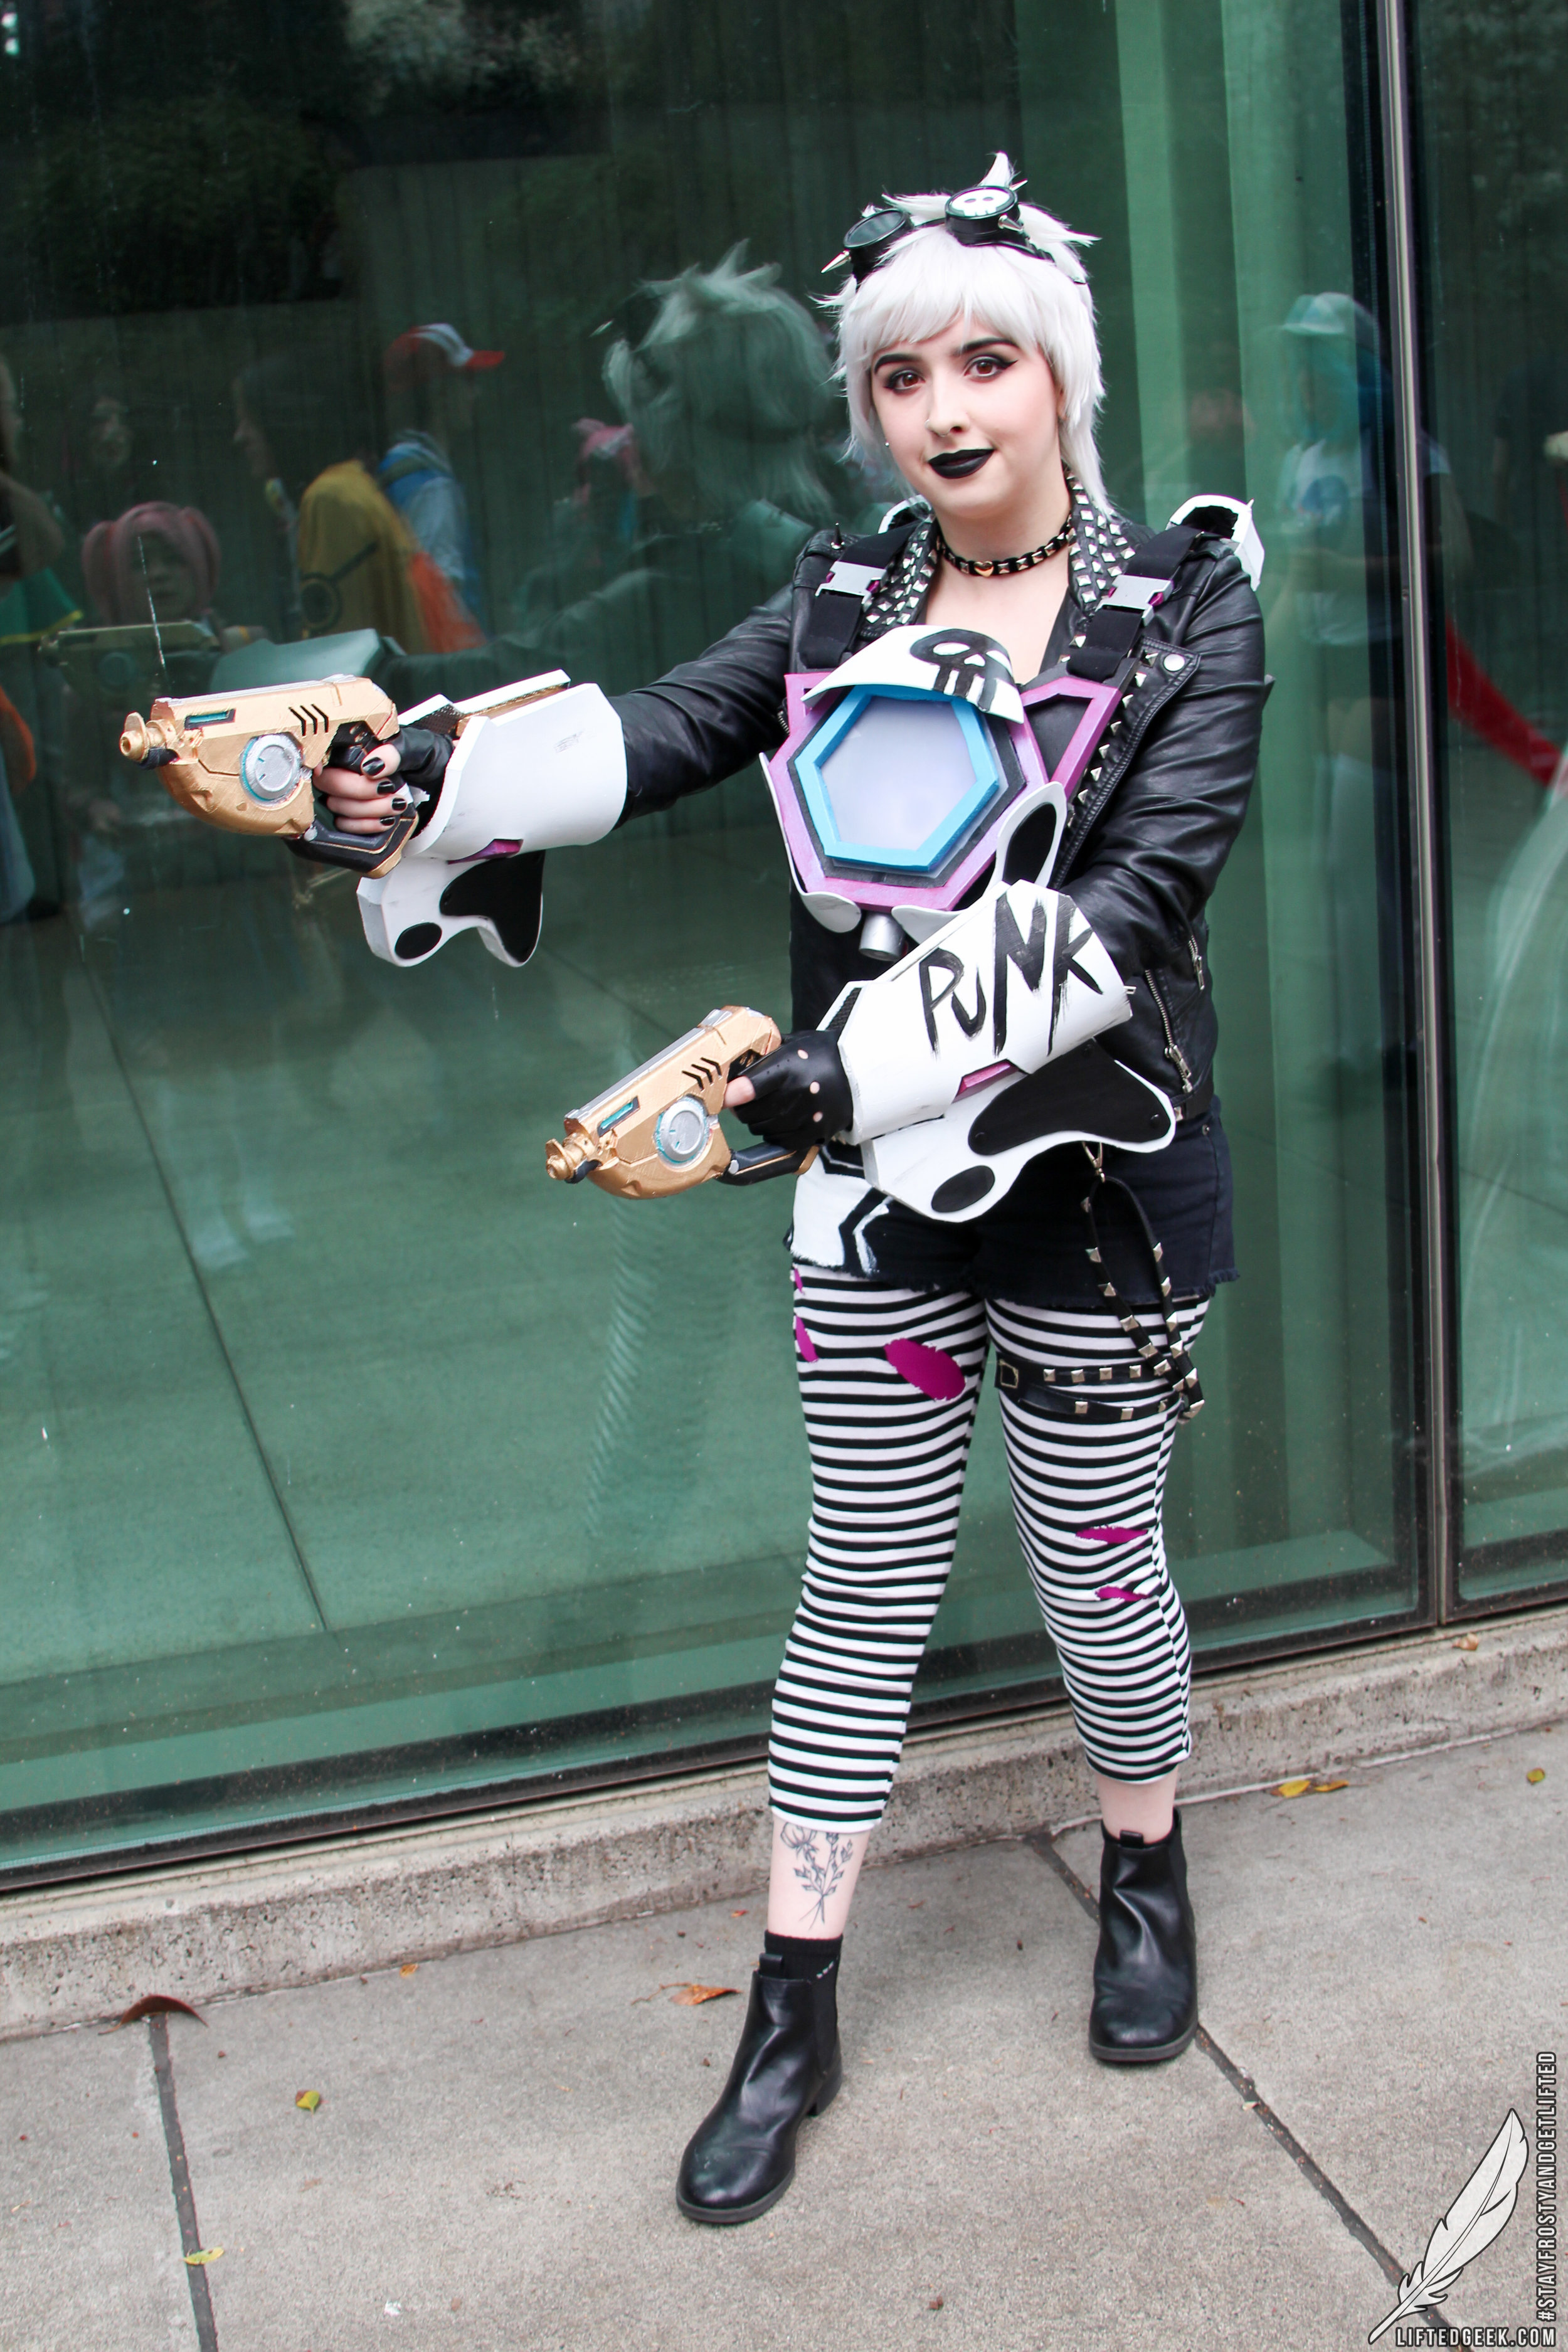 Sakuracon-cosplay-30.jpg